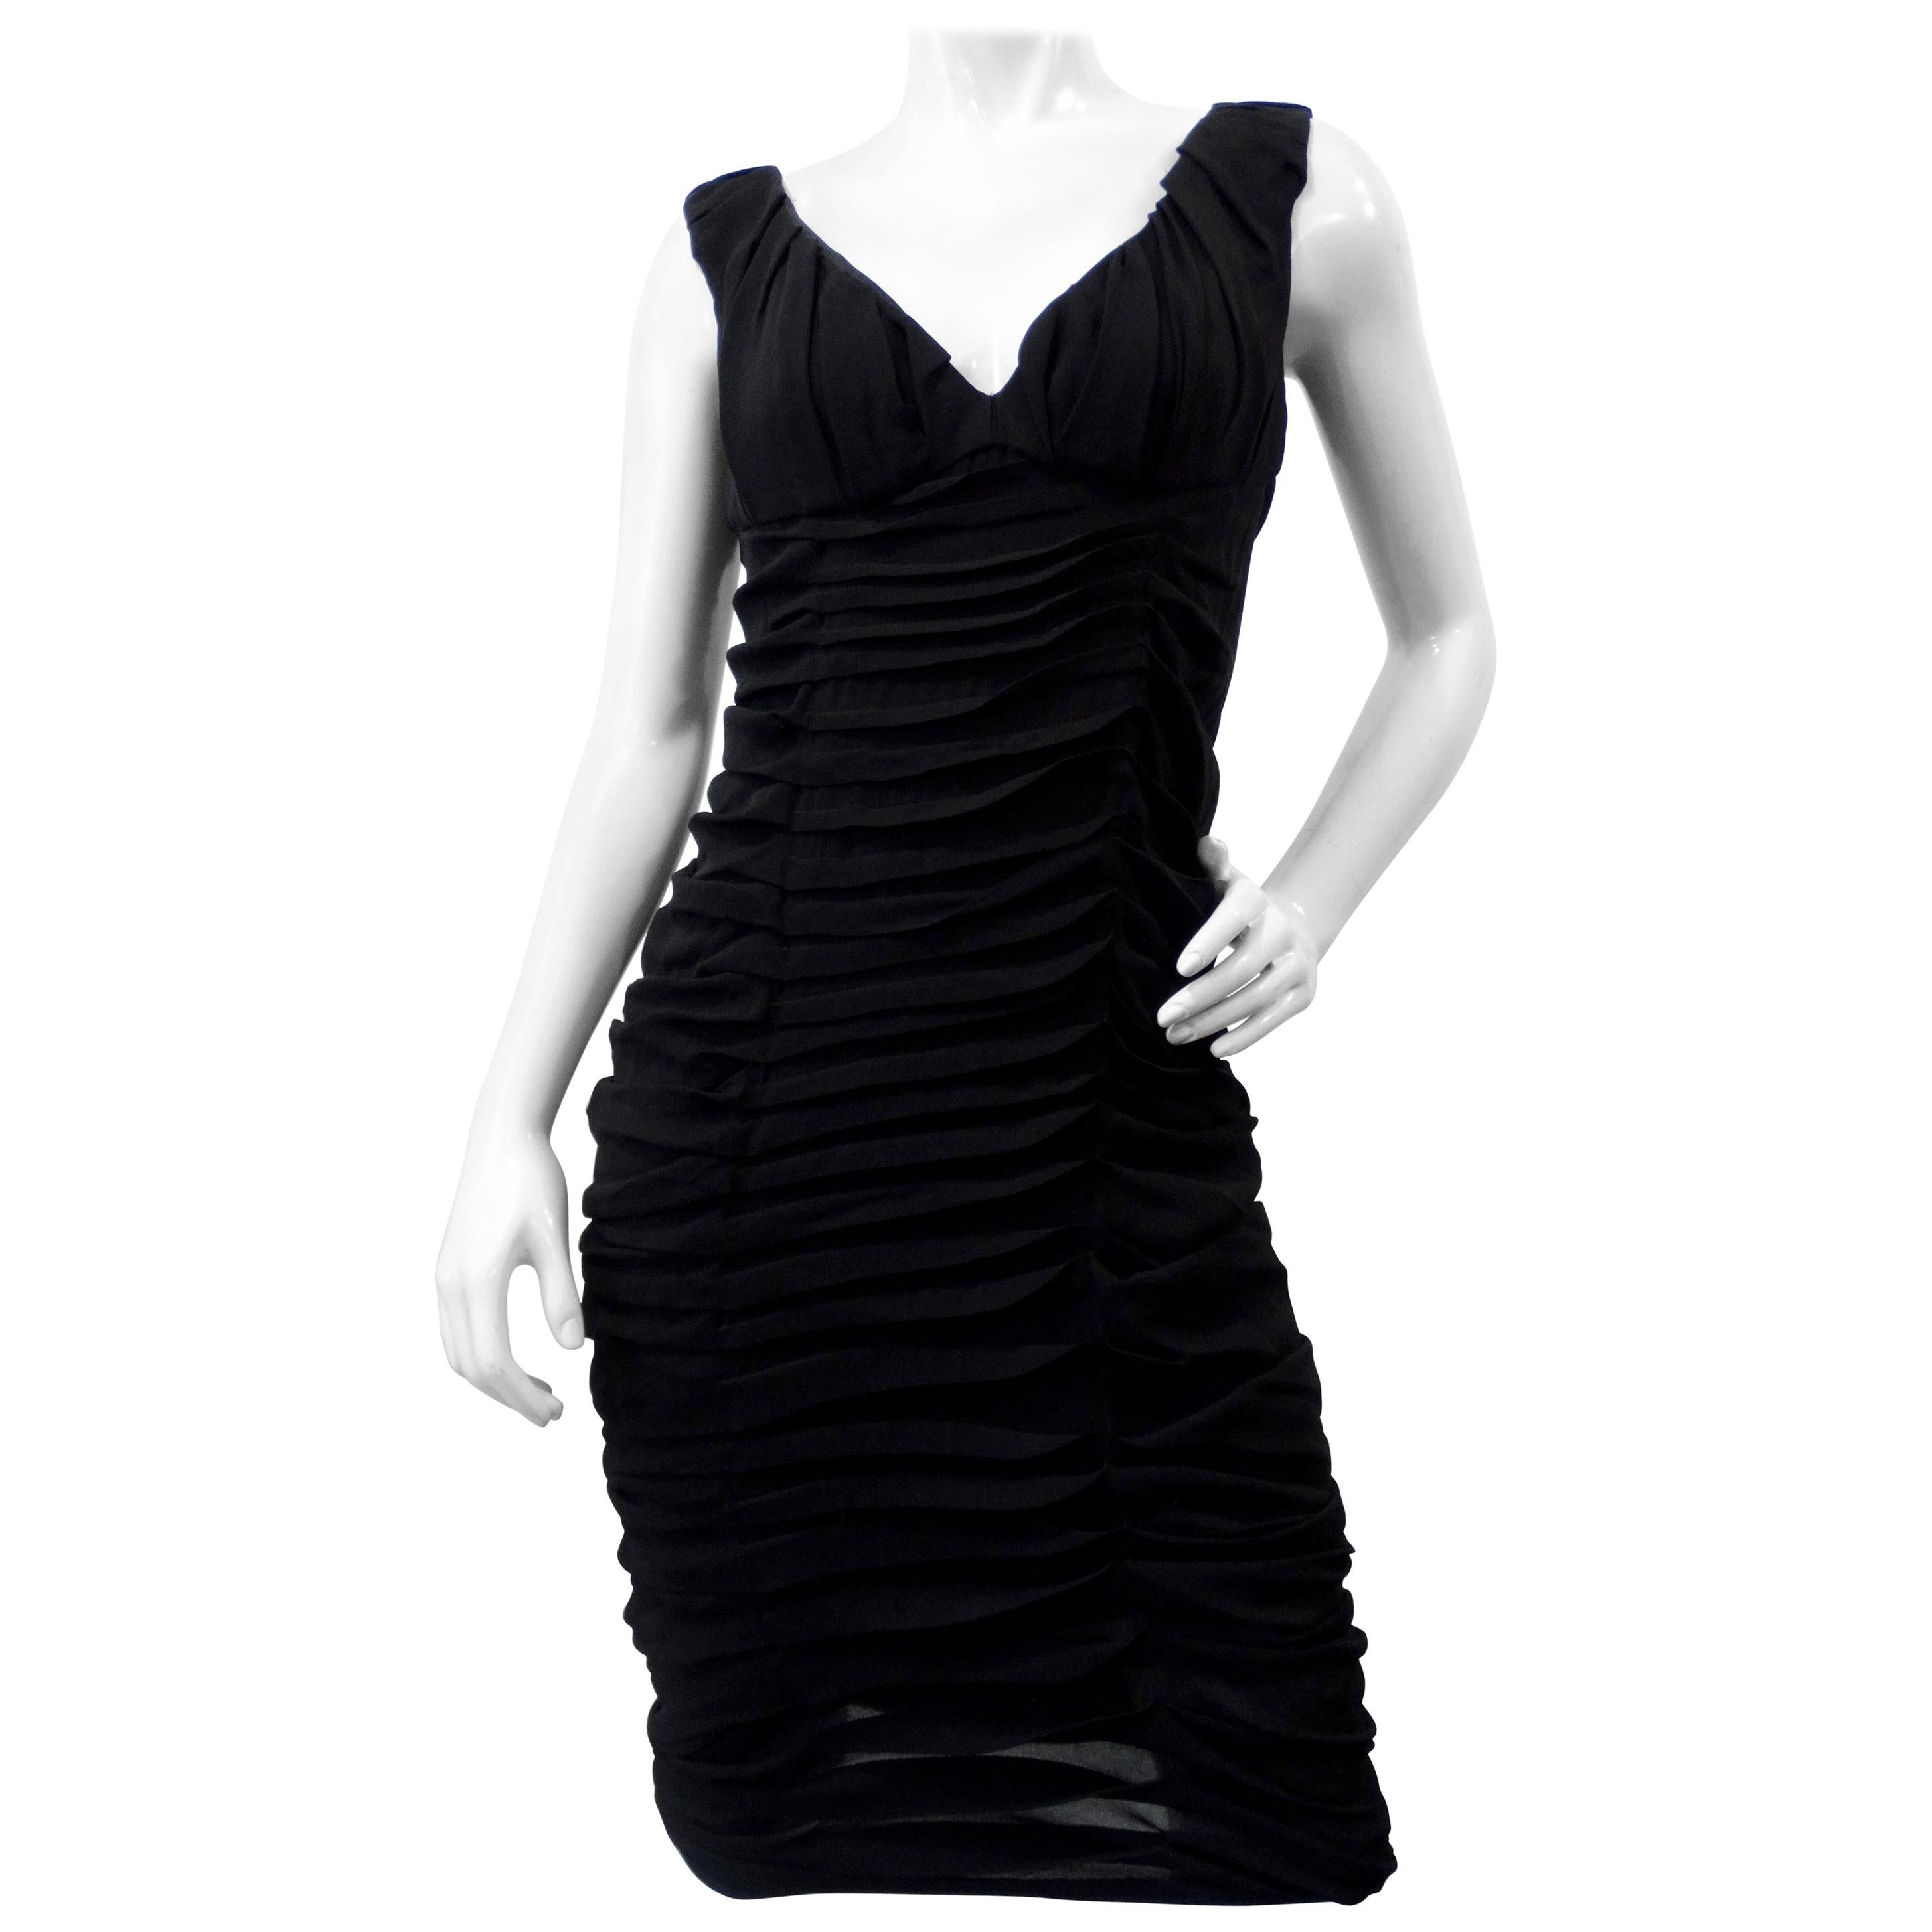 Tom Ford For Yves Saint Laurent 2000s Ruched Cocktail Dress